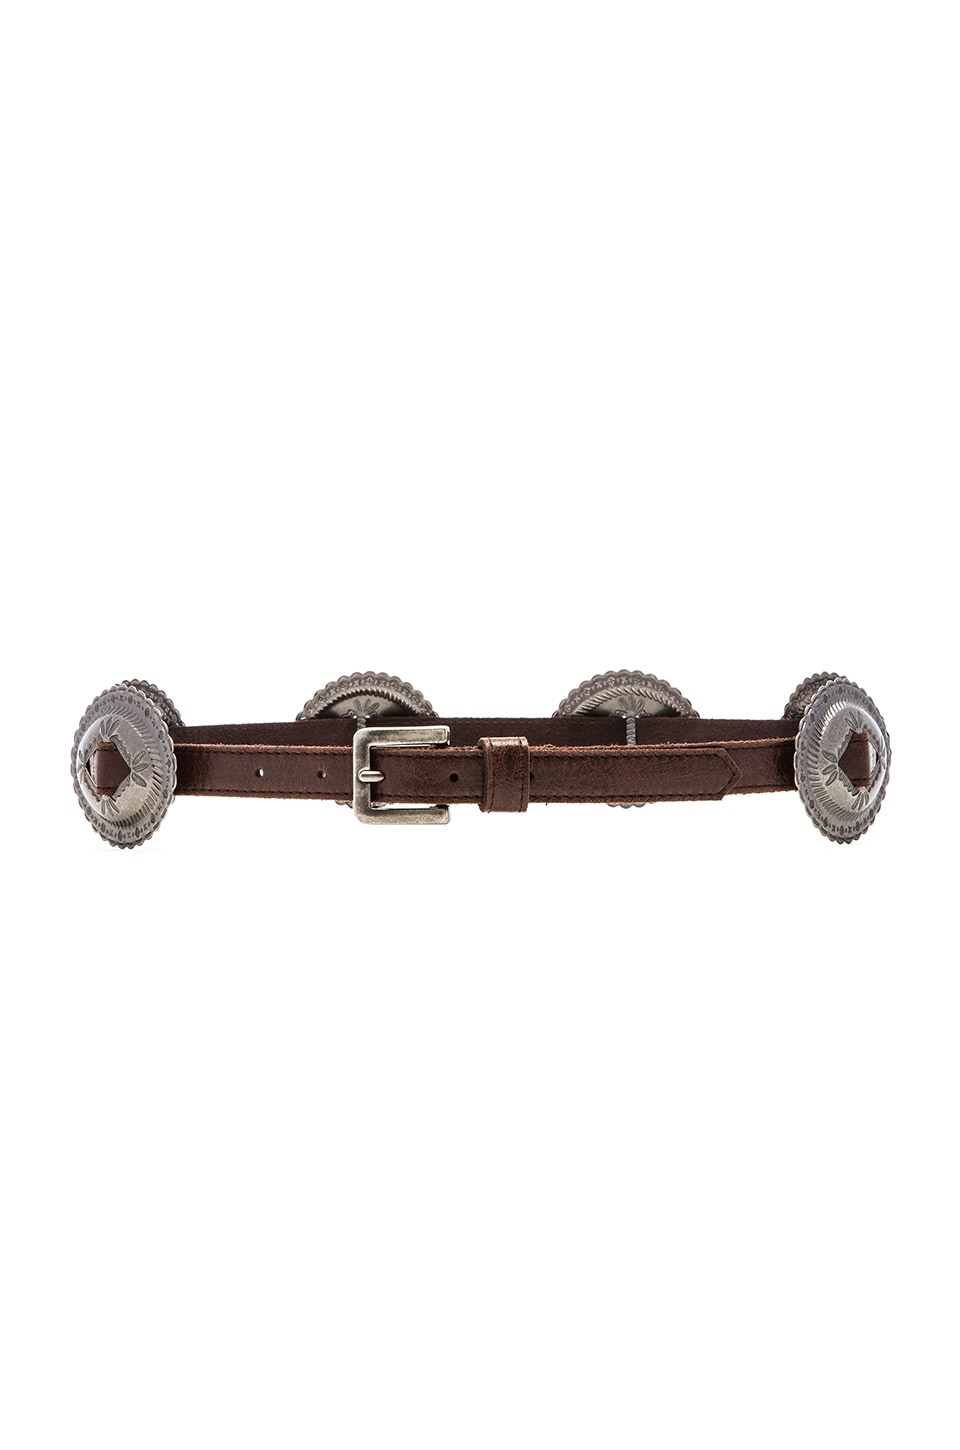 Lovestrength Phoenix Belt in Brown & Silver